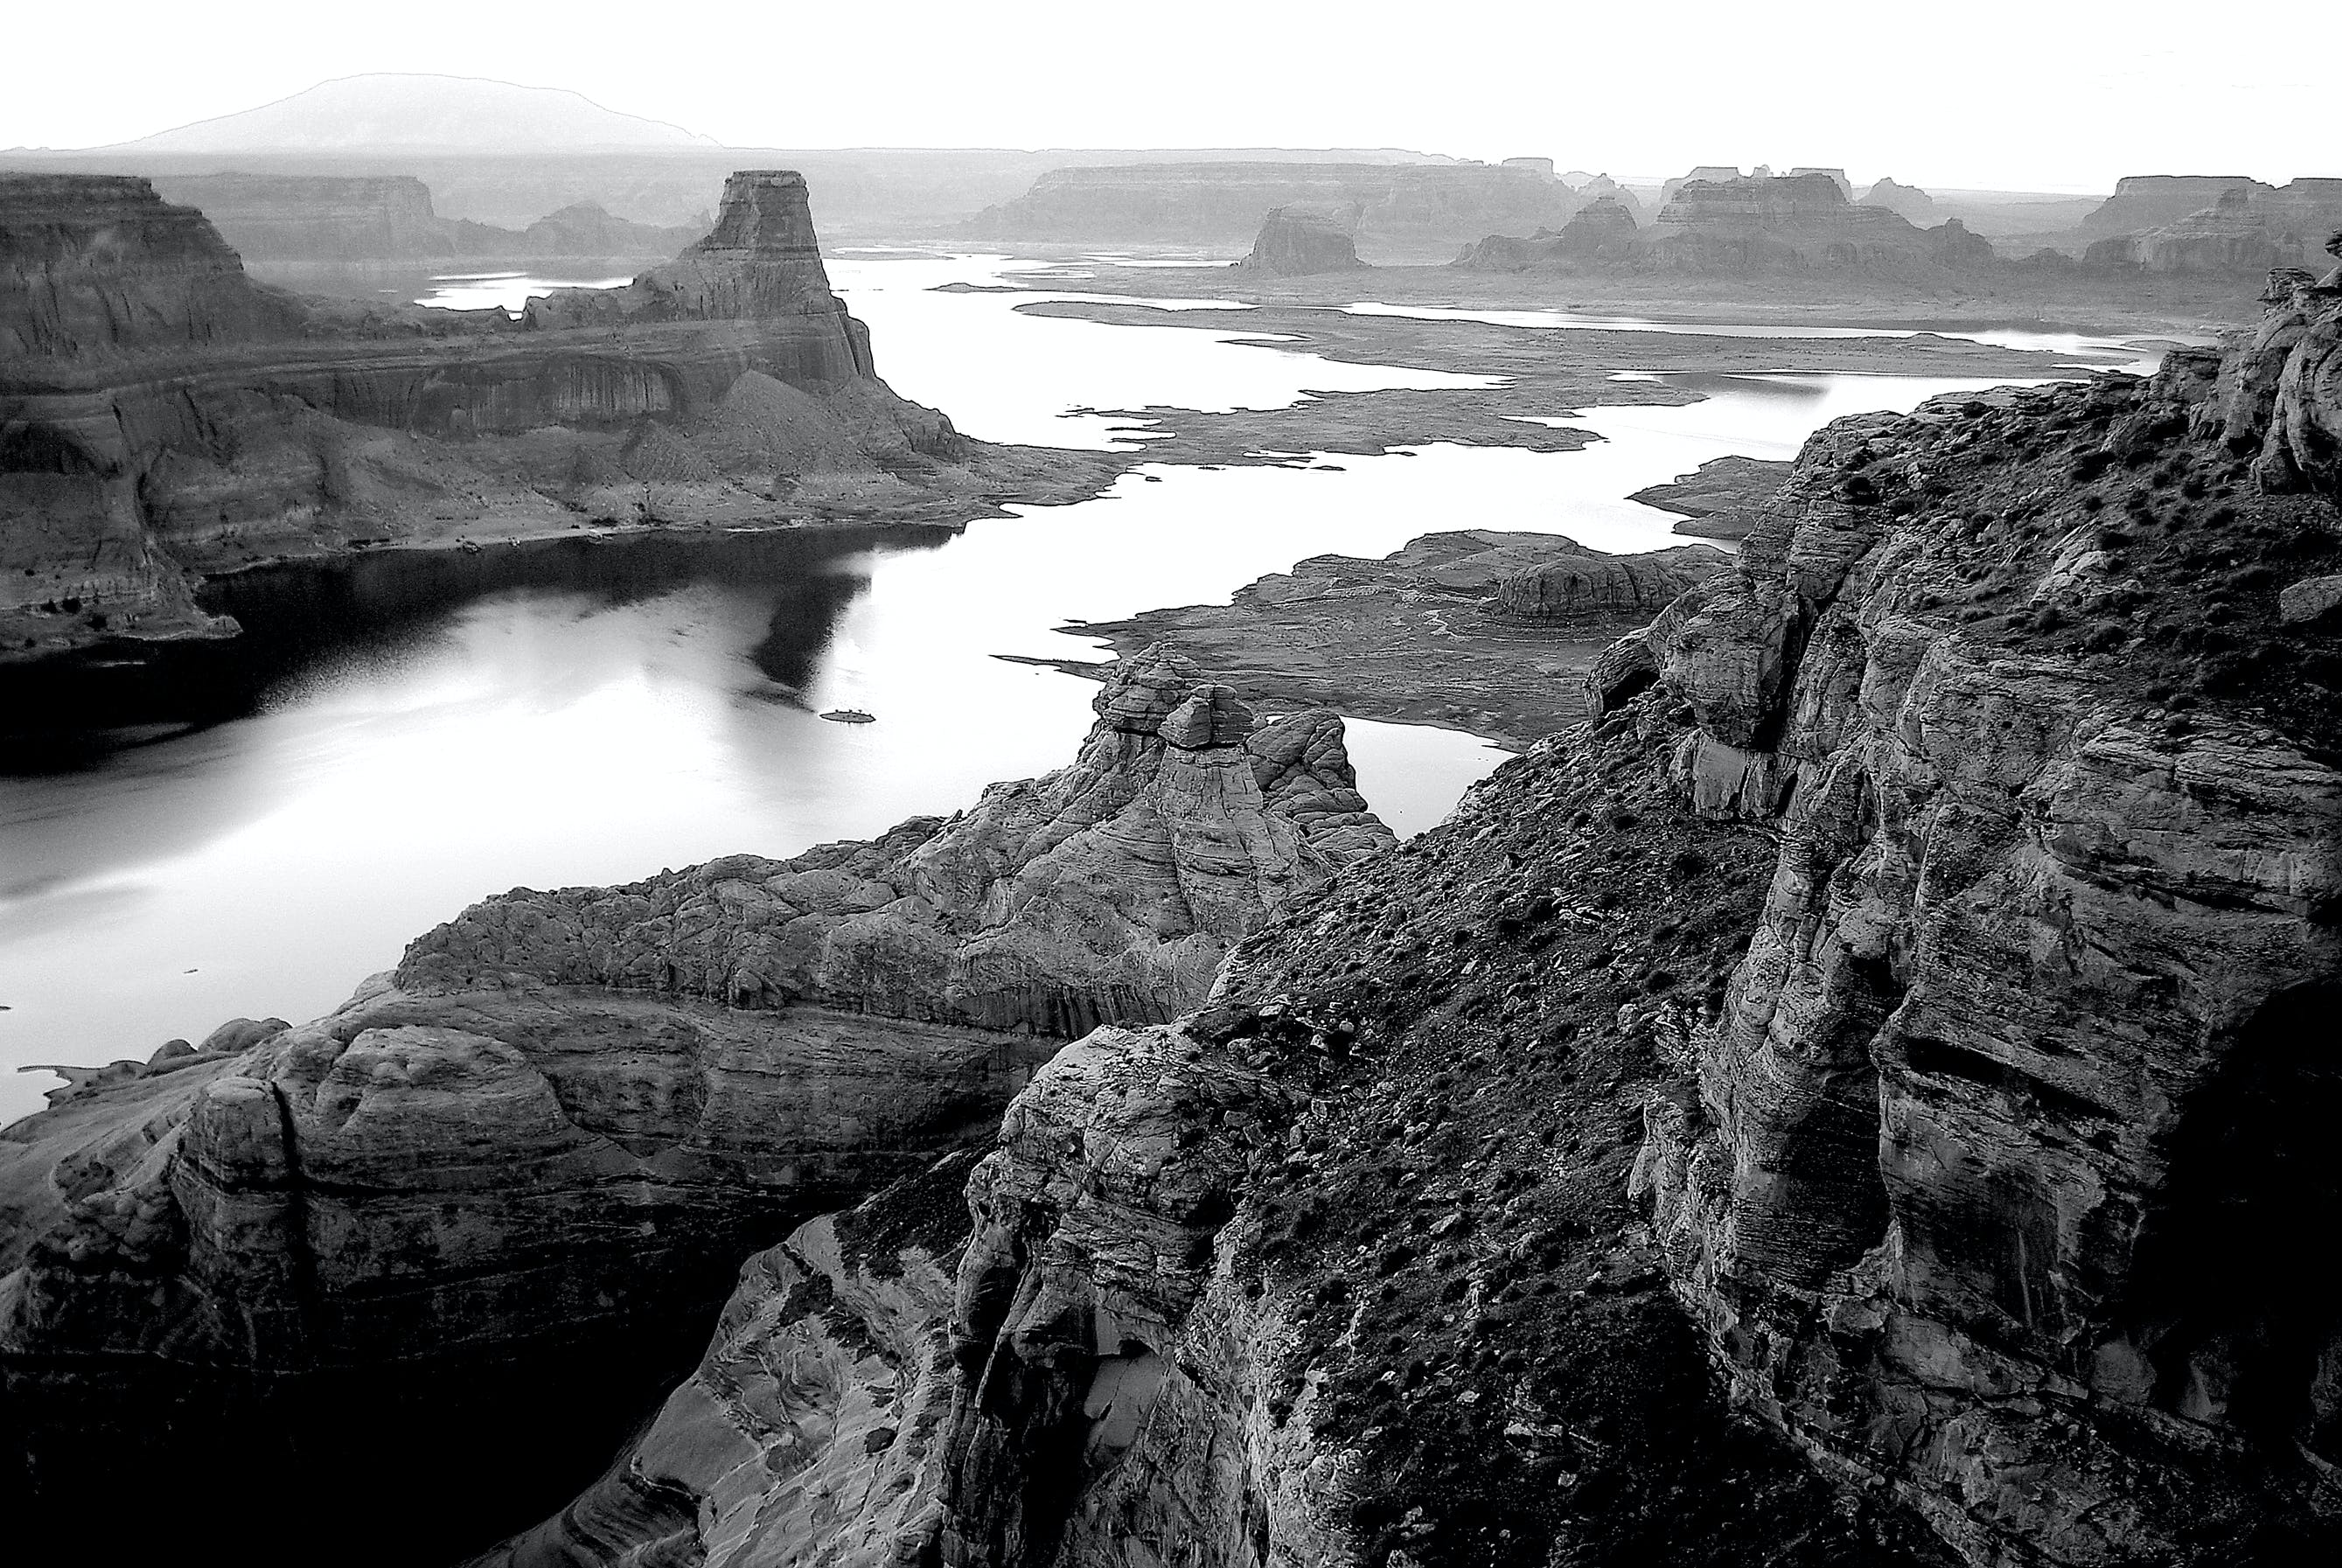 Grayscale Photography of High Rise Rock Near Body of Water